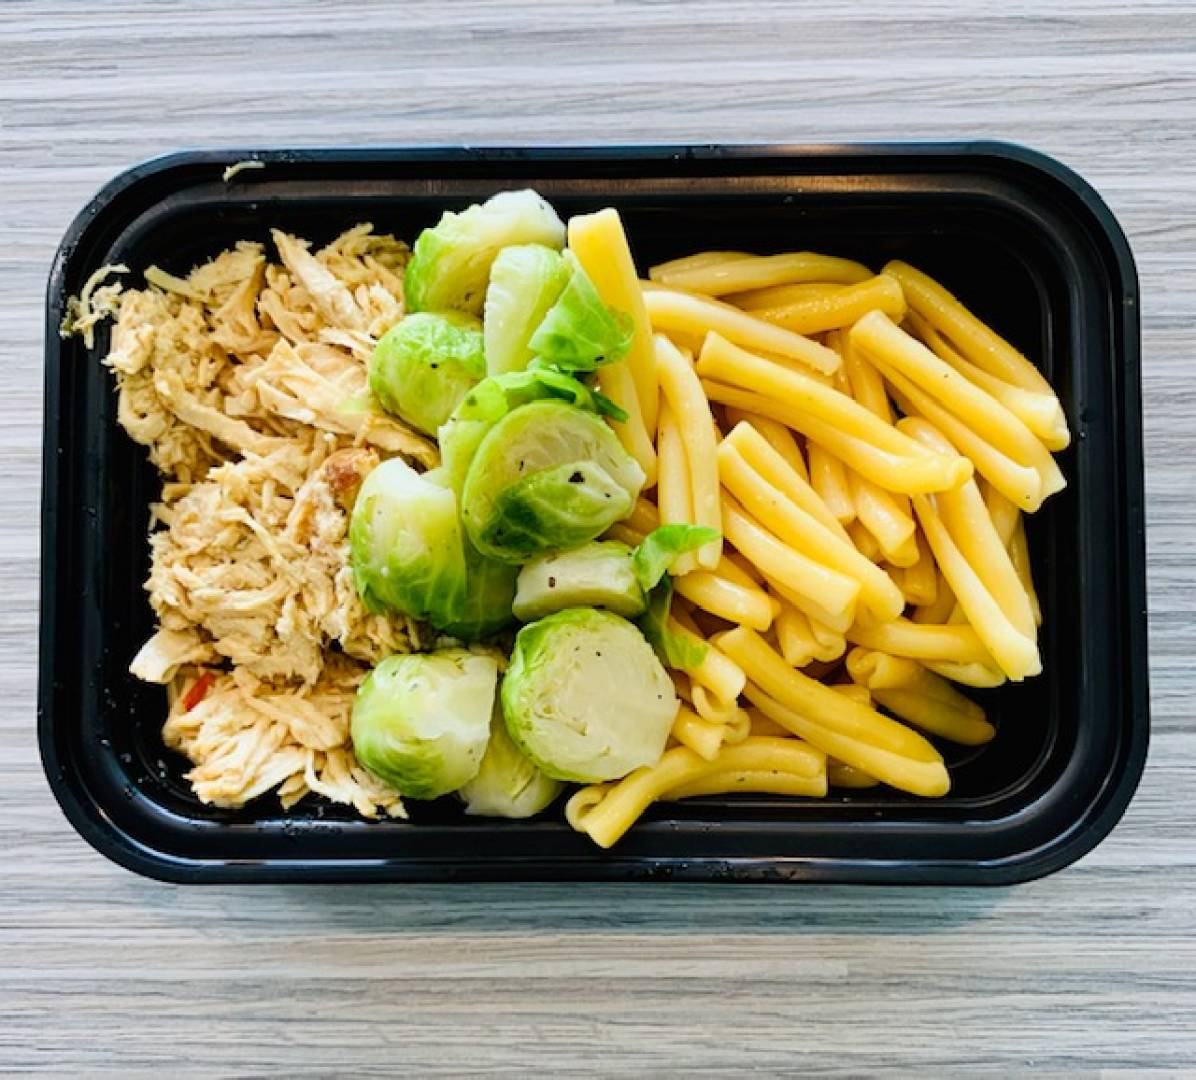 Shredded Chicken, Organic Pasta and Brussel Sprouts